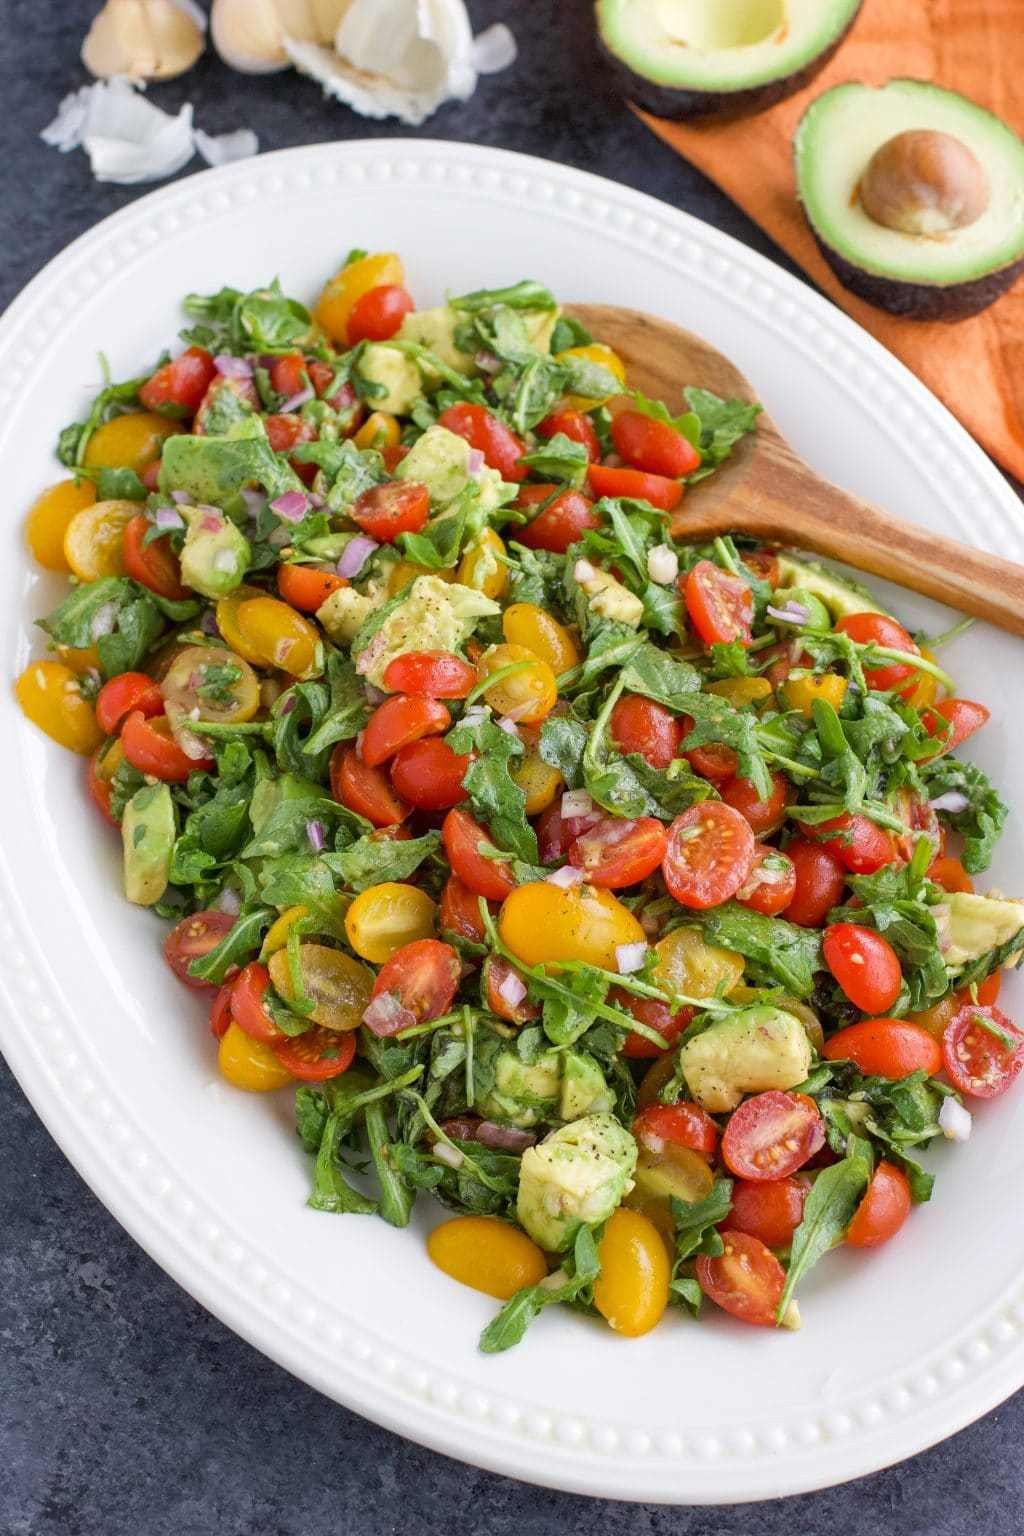 40 delicious & healthy vegan salad recipes picture of avocado tomato salad for recipe roundup